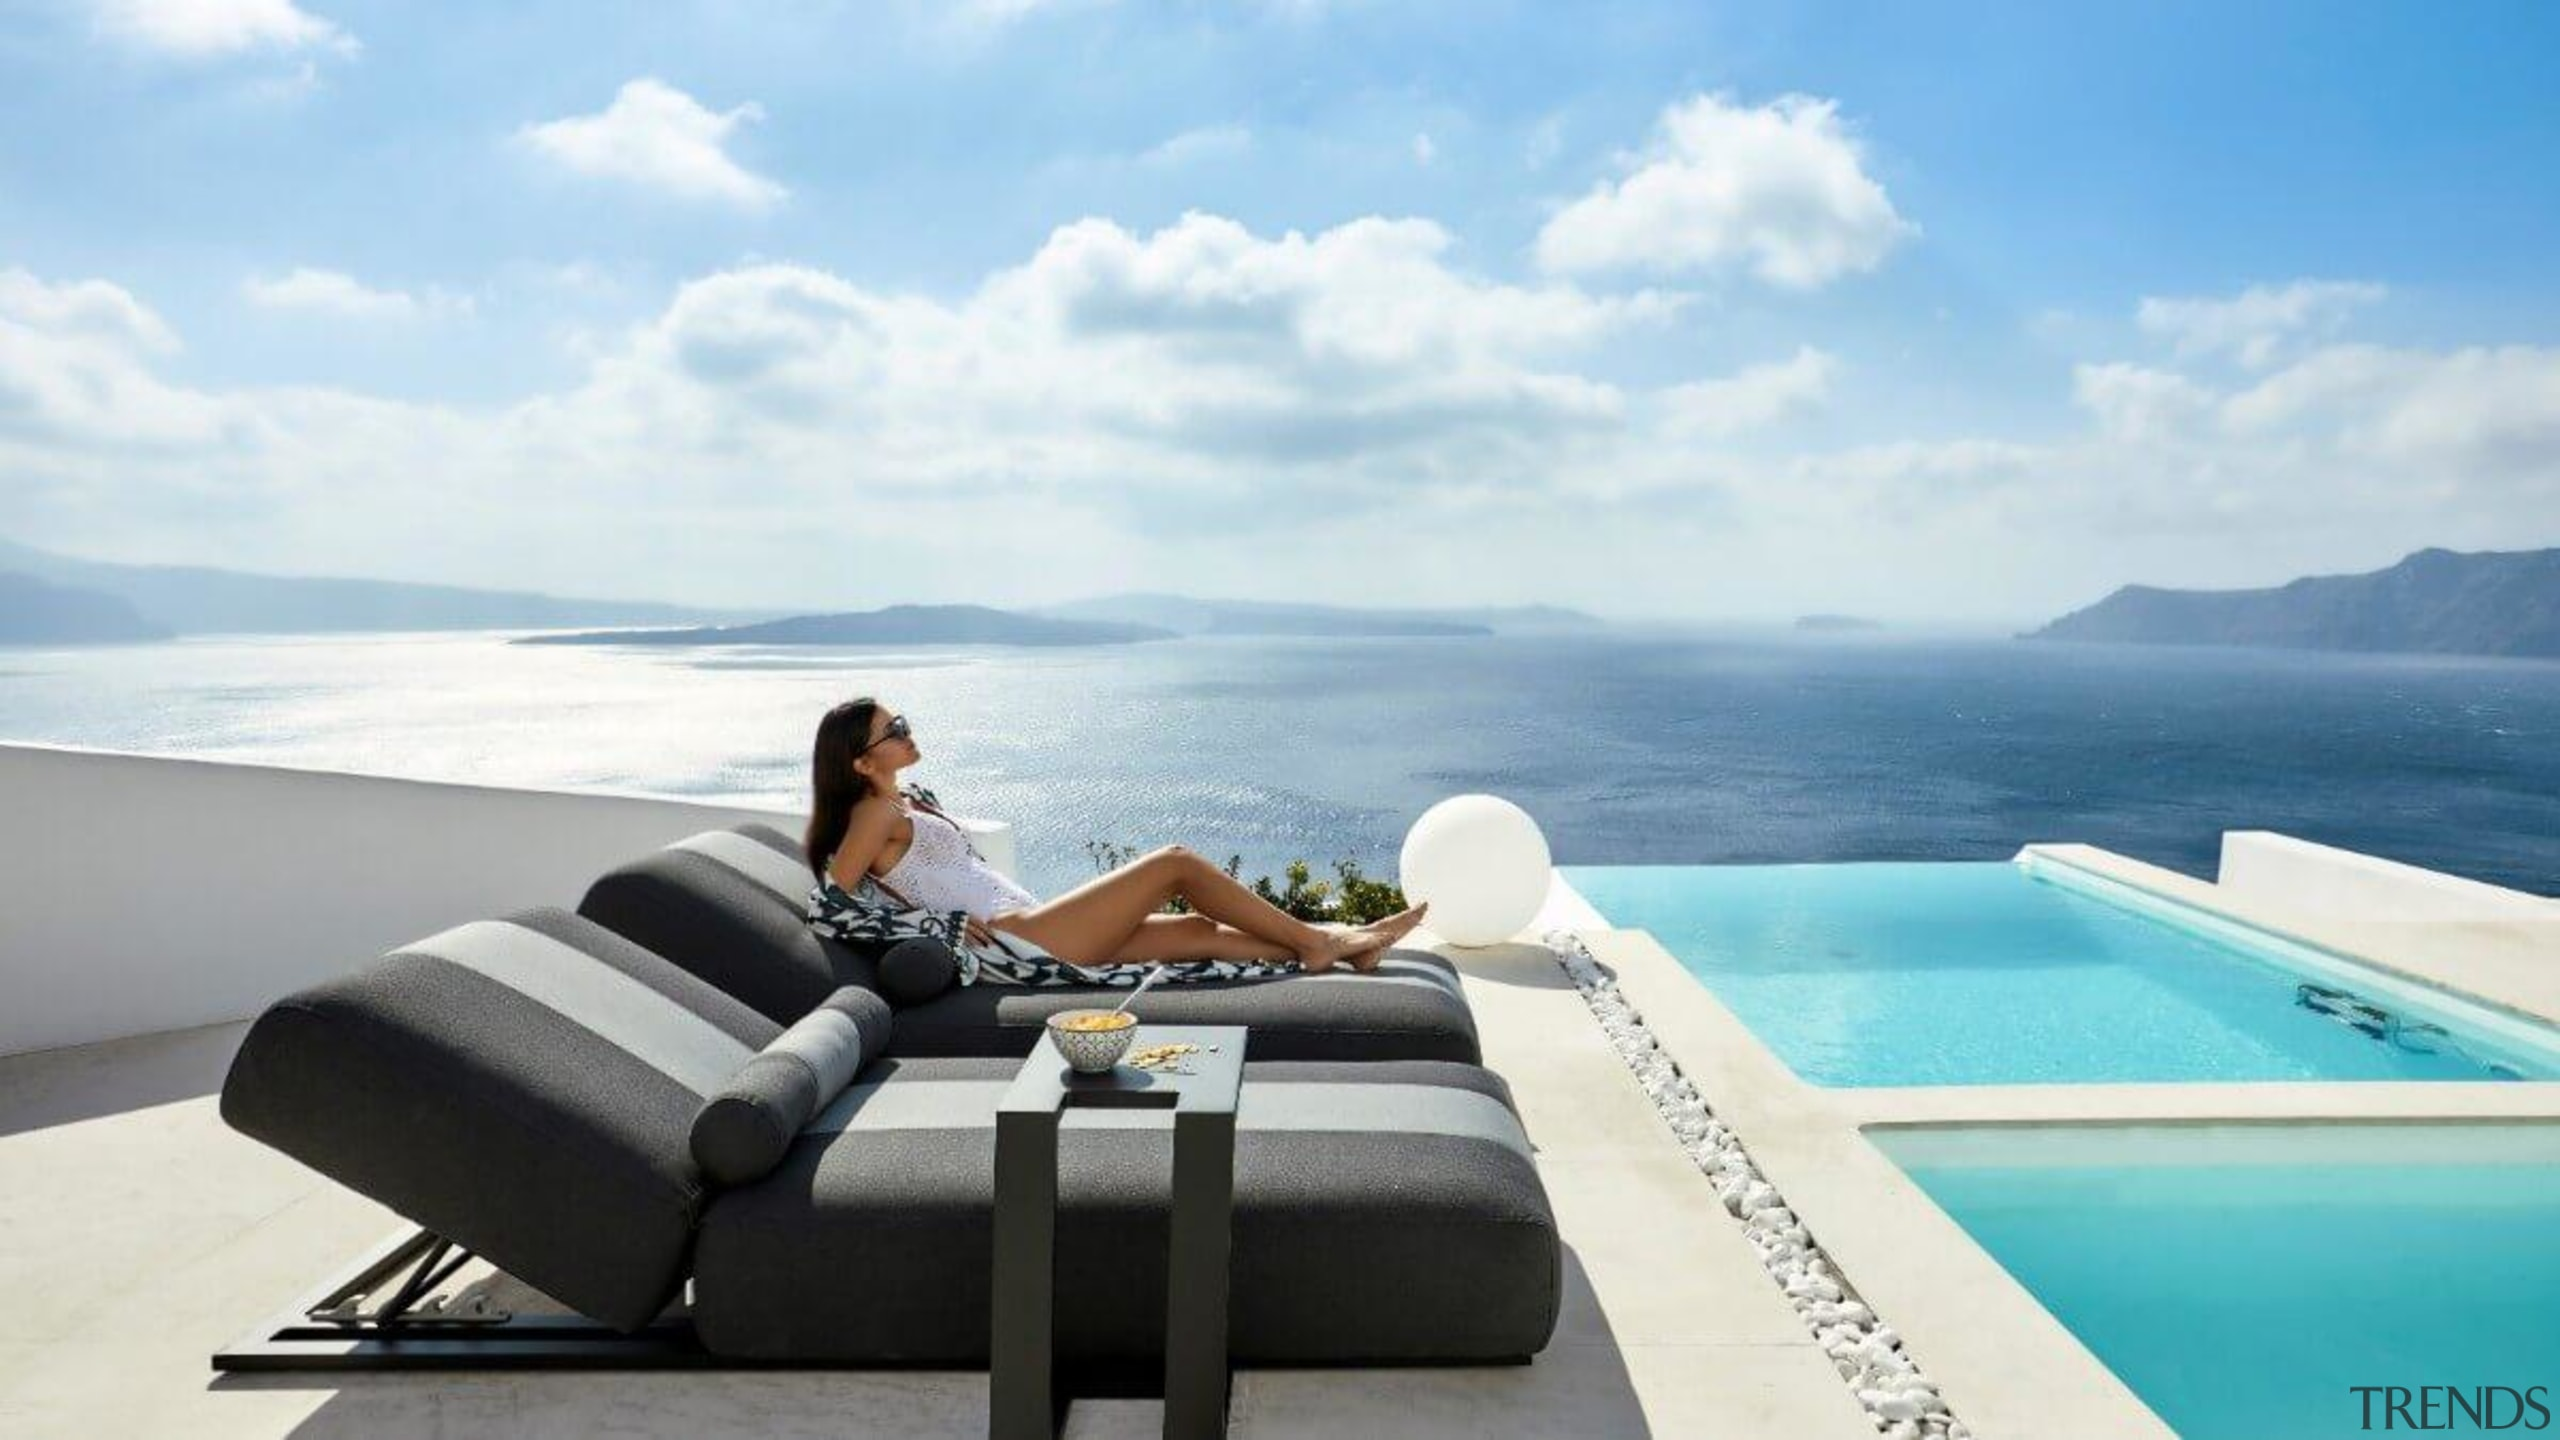 Ensuring you purchase pieces that are fit for caribbean, chaise longue, comfort, couch, furniture, honeymoon, house, interior design, leisure, luxury yacht, ocean, outdoor furniture, property, real estate, resort, room, sea, sky, sunlounger, swimming pool, table, tourism, travel, vacation, white, teal